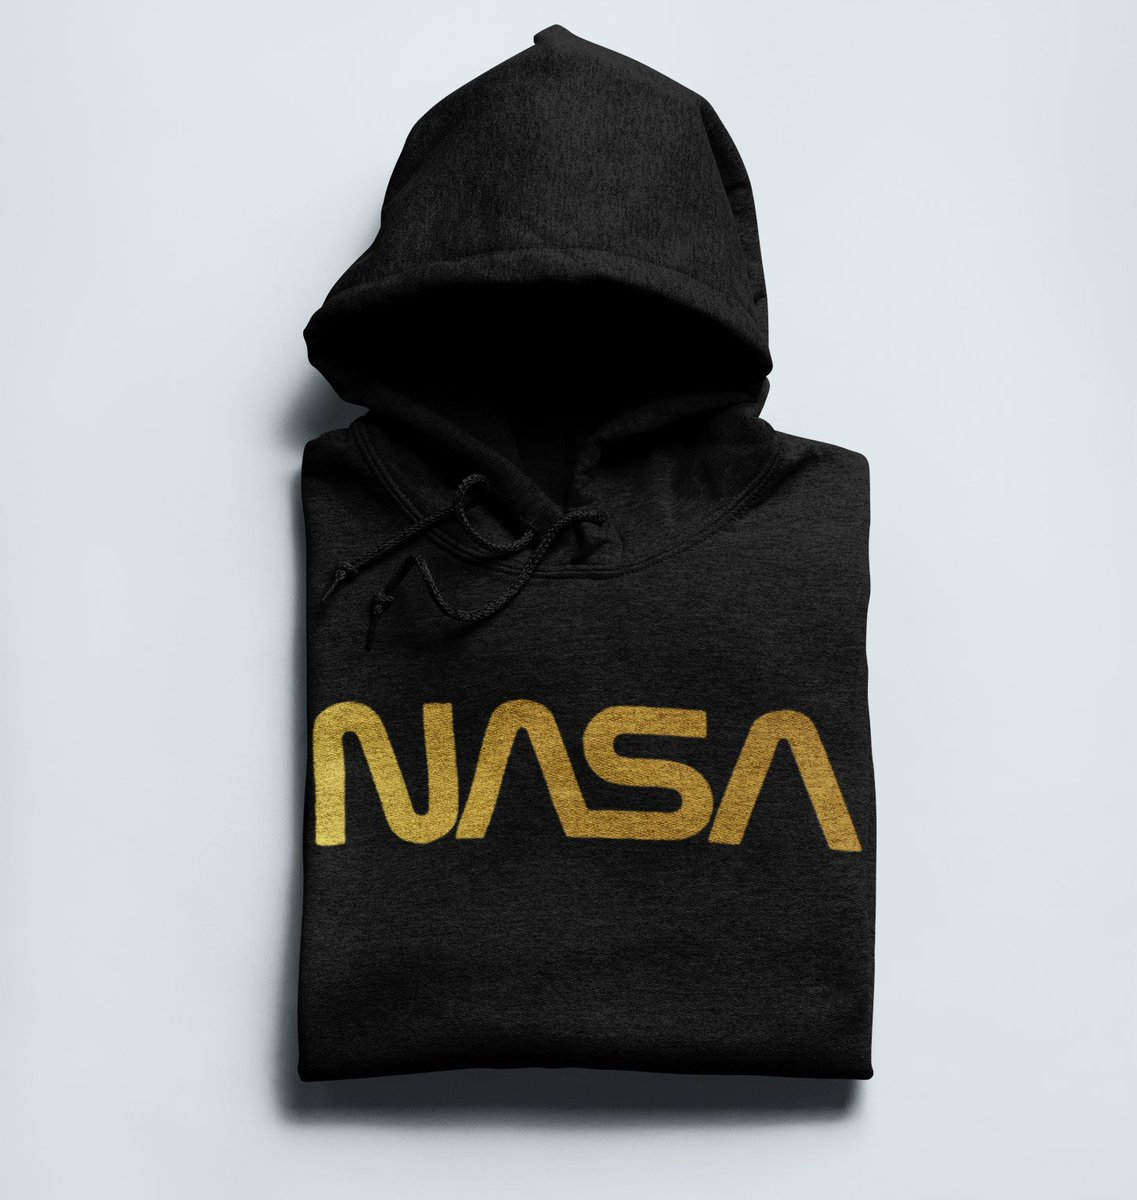 Nasa Depot Black Gold Flake Hoodie On Sale Now!     #Apparel #Clothing #Streetwear #Nasa #Artemis #Gold #Space #Galaxy  #love #fashion #science #astronaut #spacex #photooftheday #NewYork #Texas #Florida #California #ISS #Stars #Art #Running #Instagood #mars